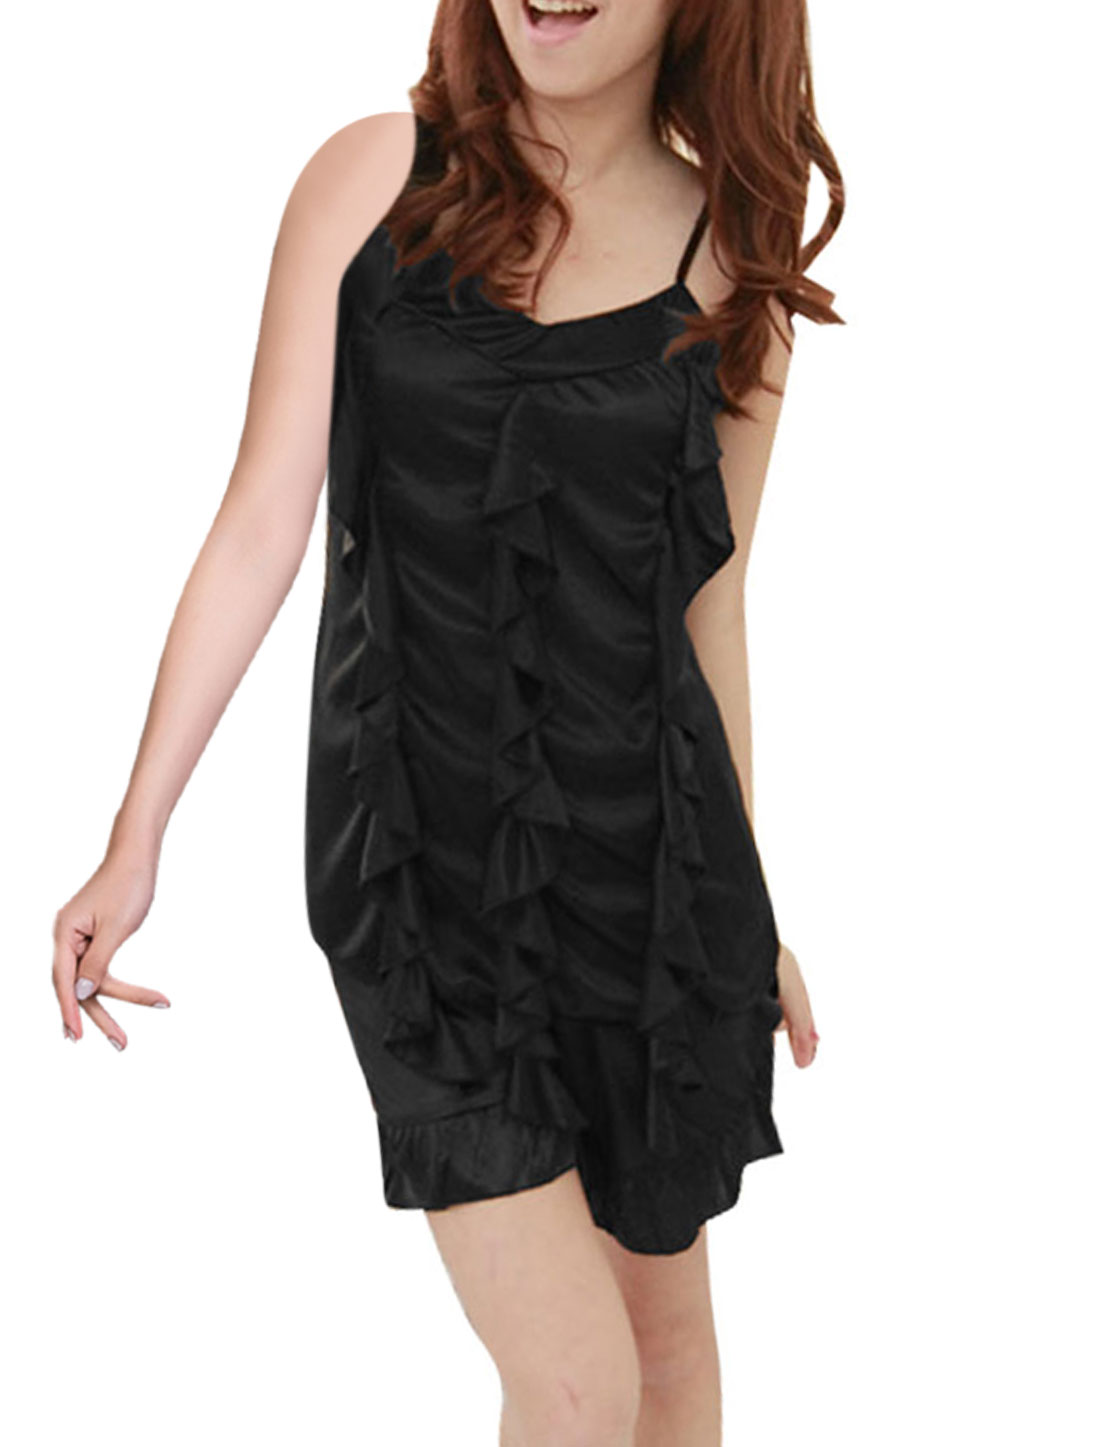 Lady Black Spaghetti Strap Flouncing V Neck Cami Sleepwear Set XS